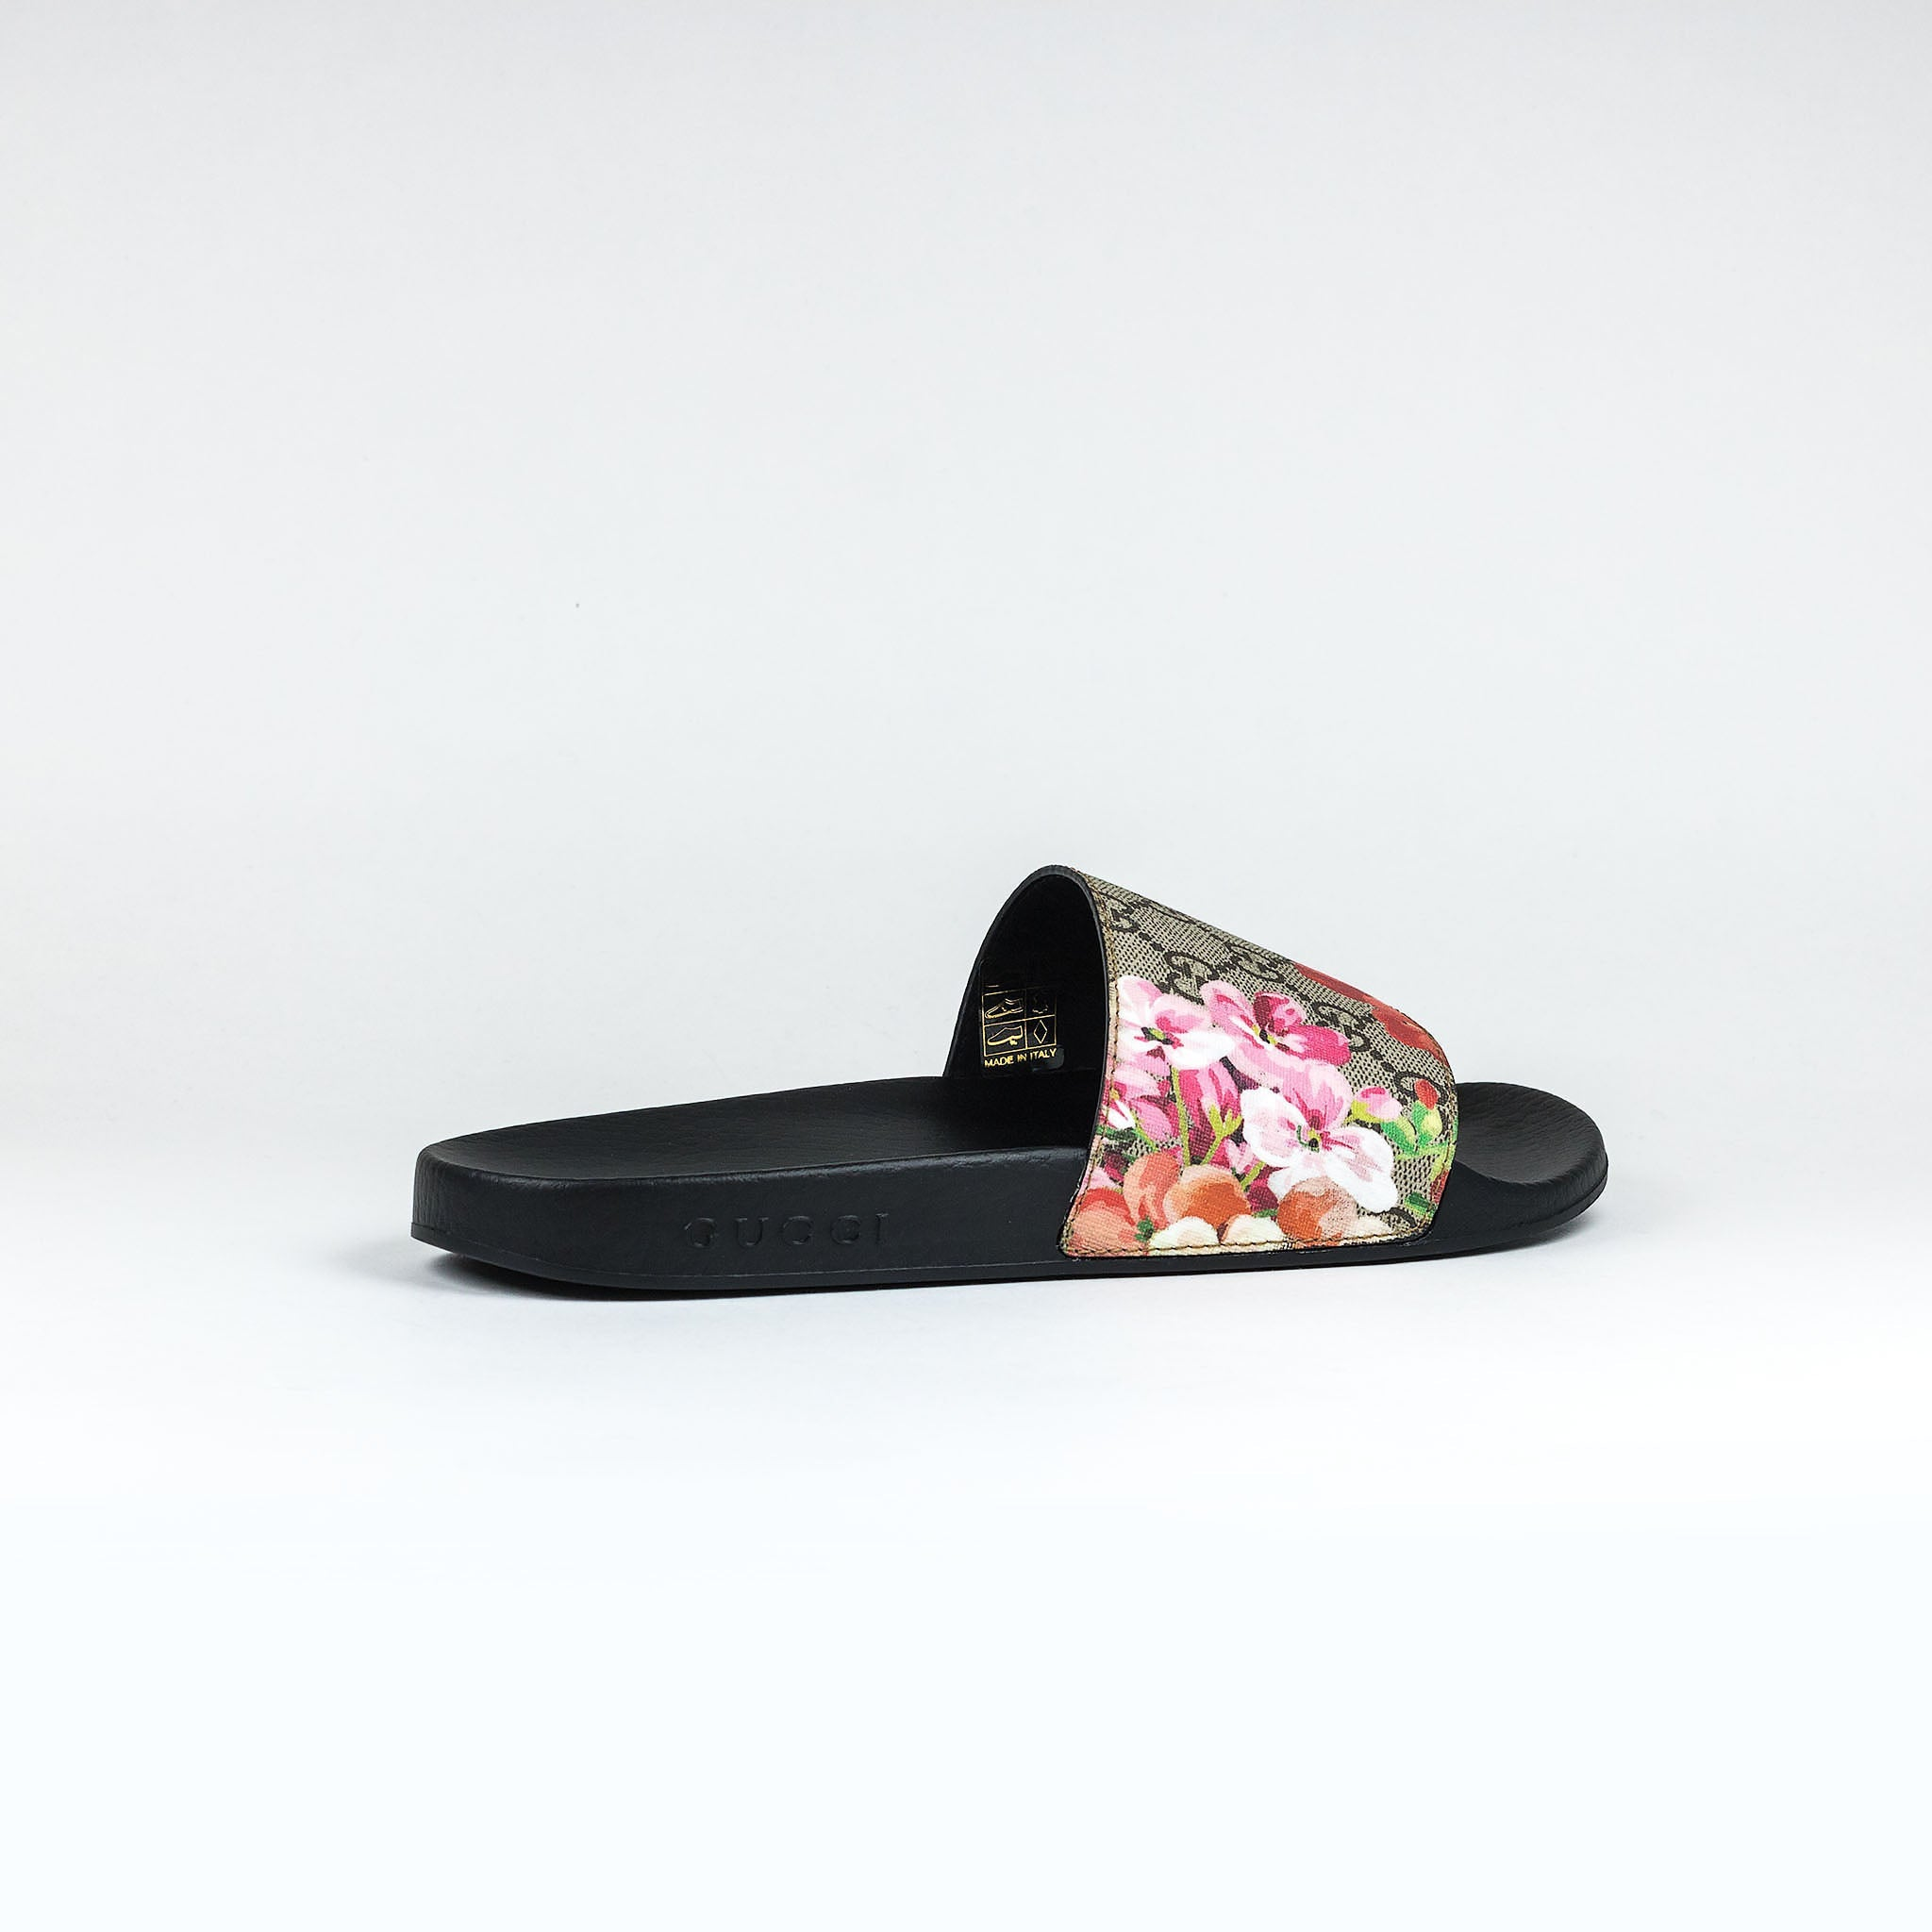 44c064959 Gucci Blooms GG Pursuit Pool Slides – Crepslocker